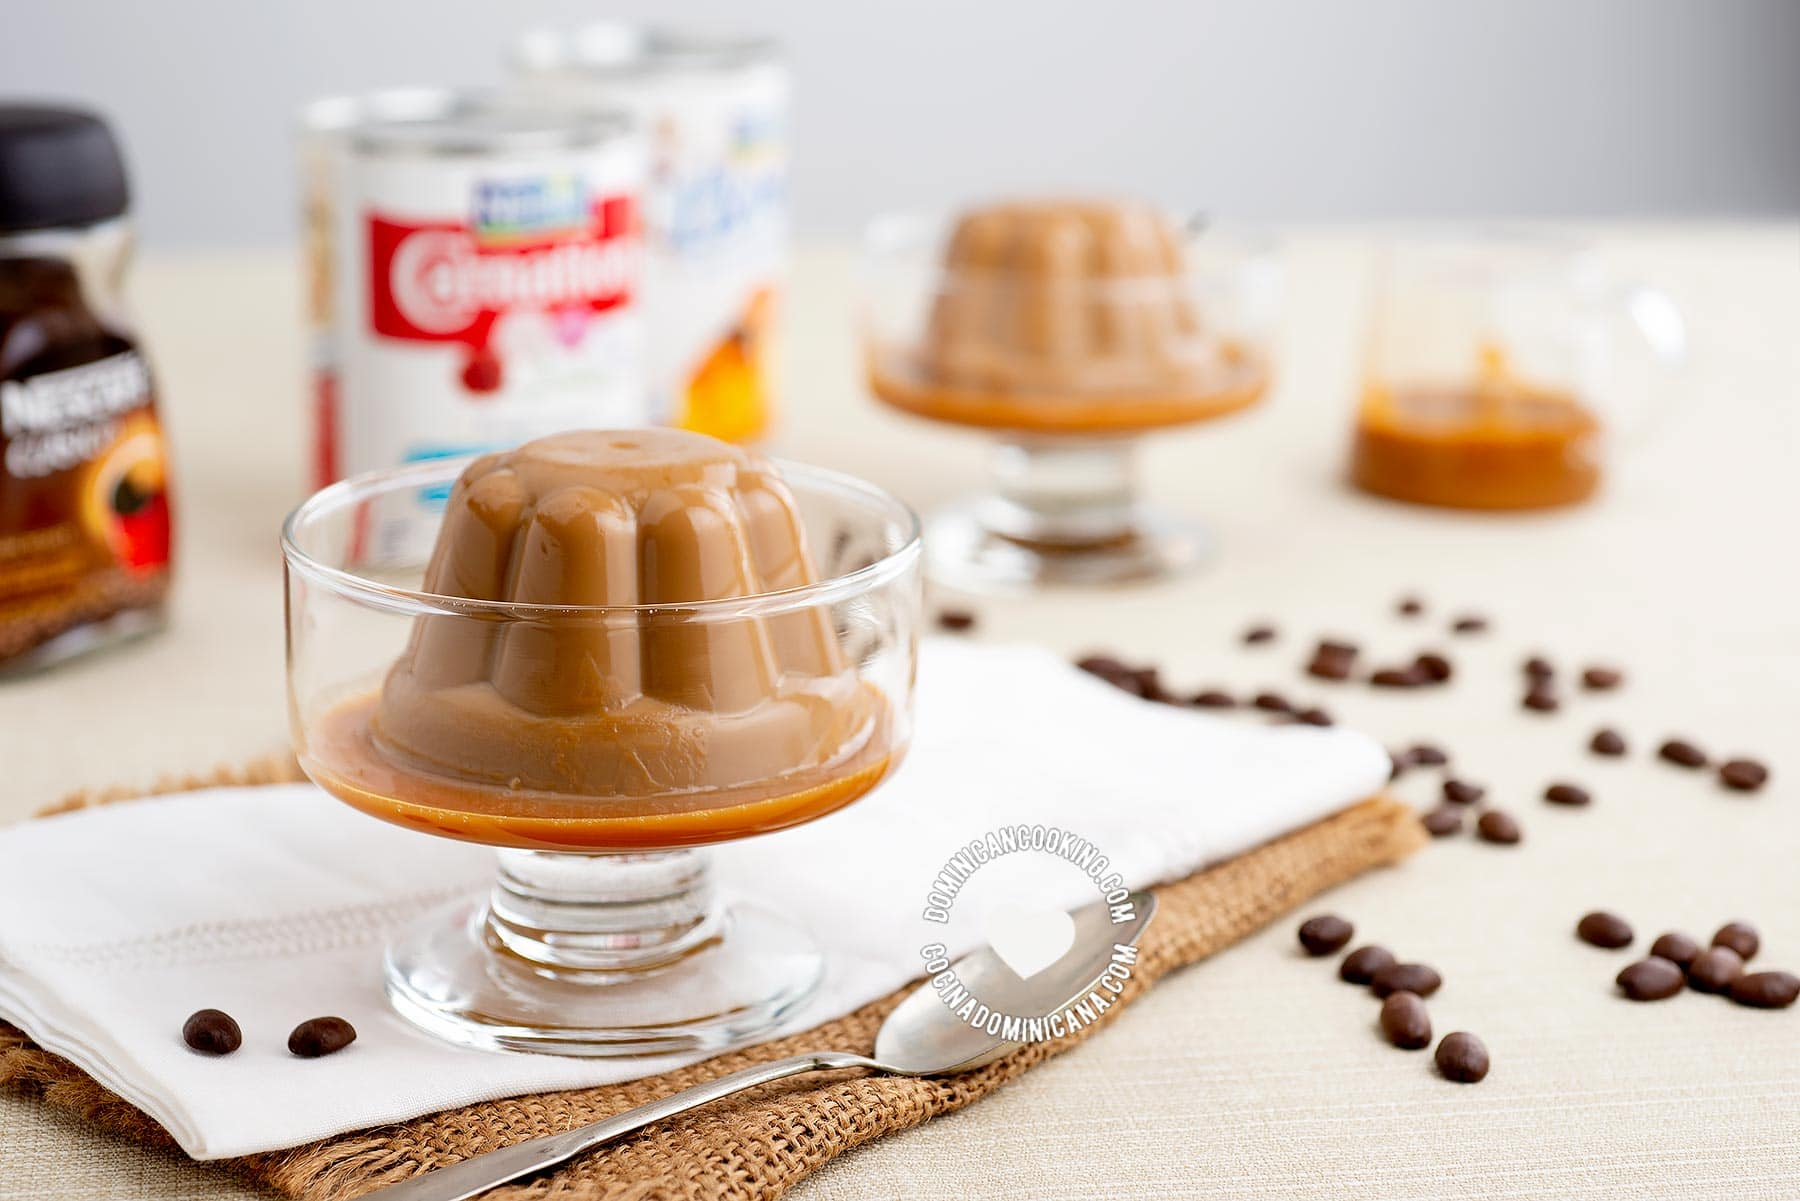 Table with Pouring sauce over Café con Dulce de Leche Pudding and Ingredients